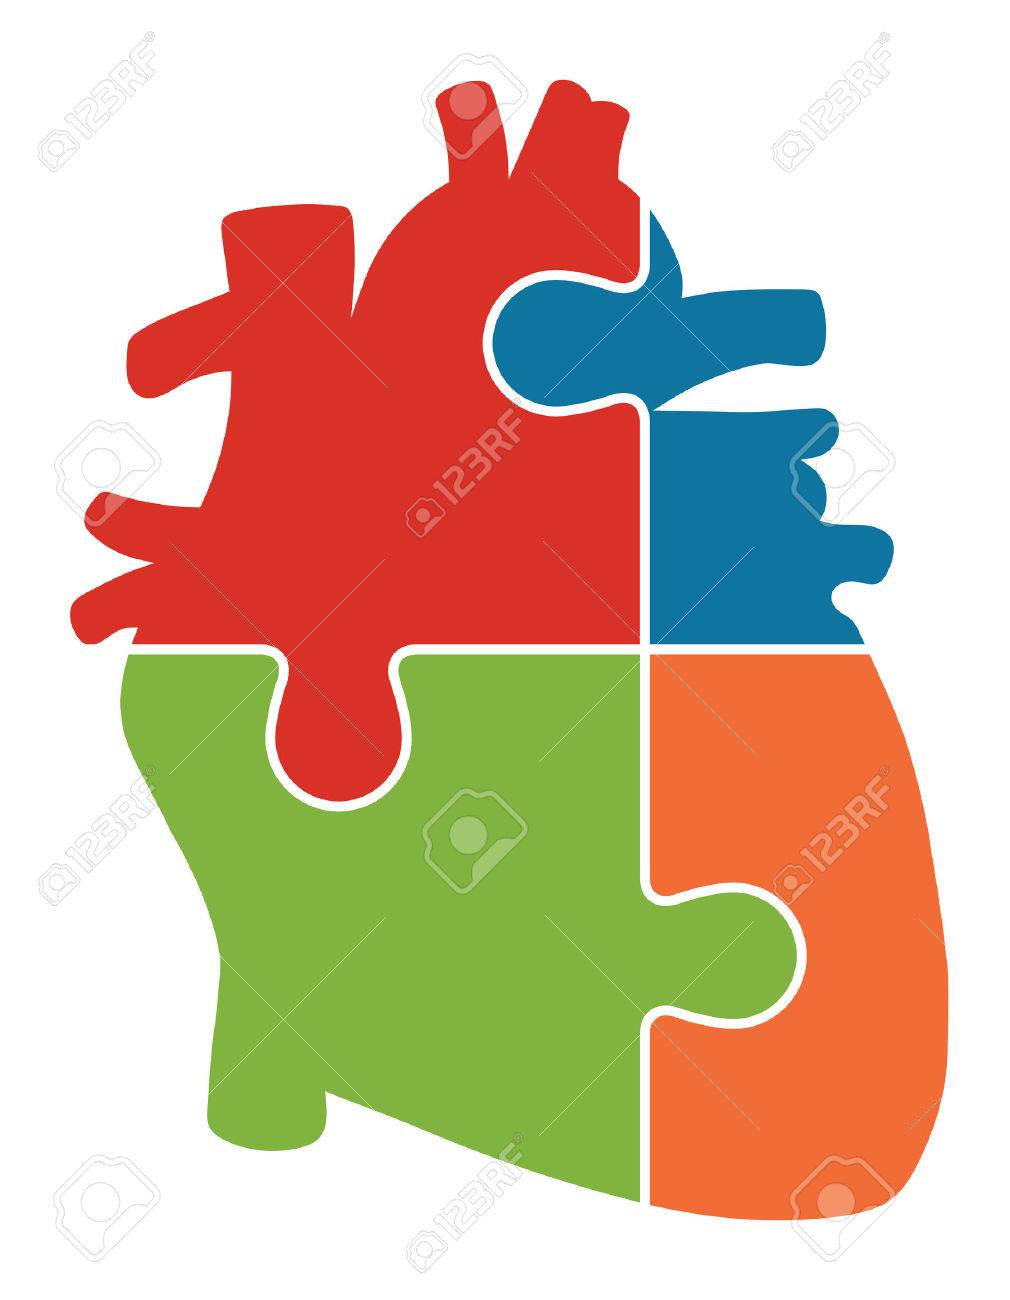 Human Heart Jigsaw Puzzle Pieces Abstract Stock Vector